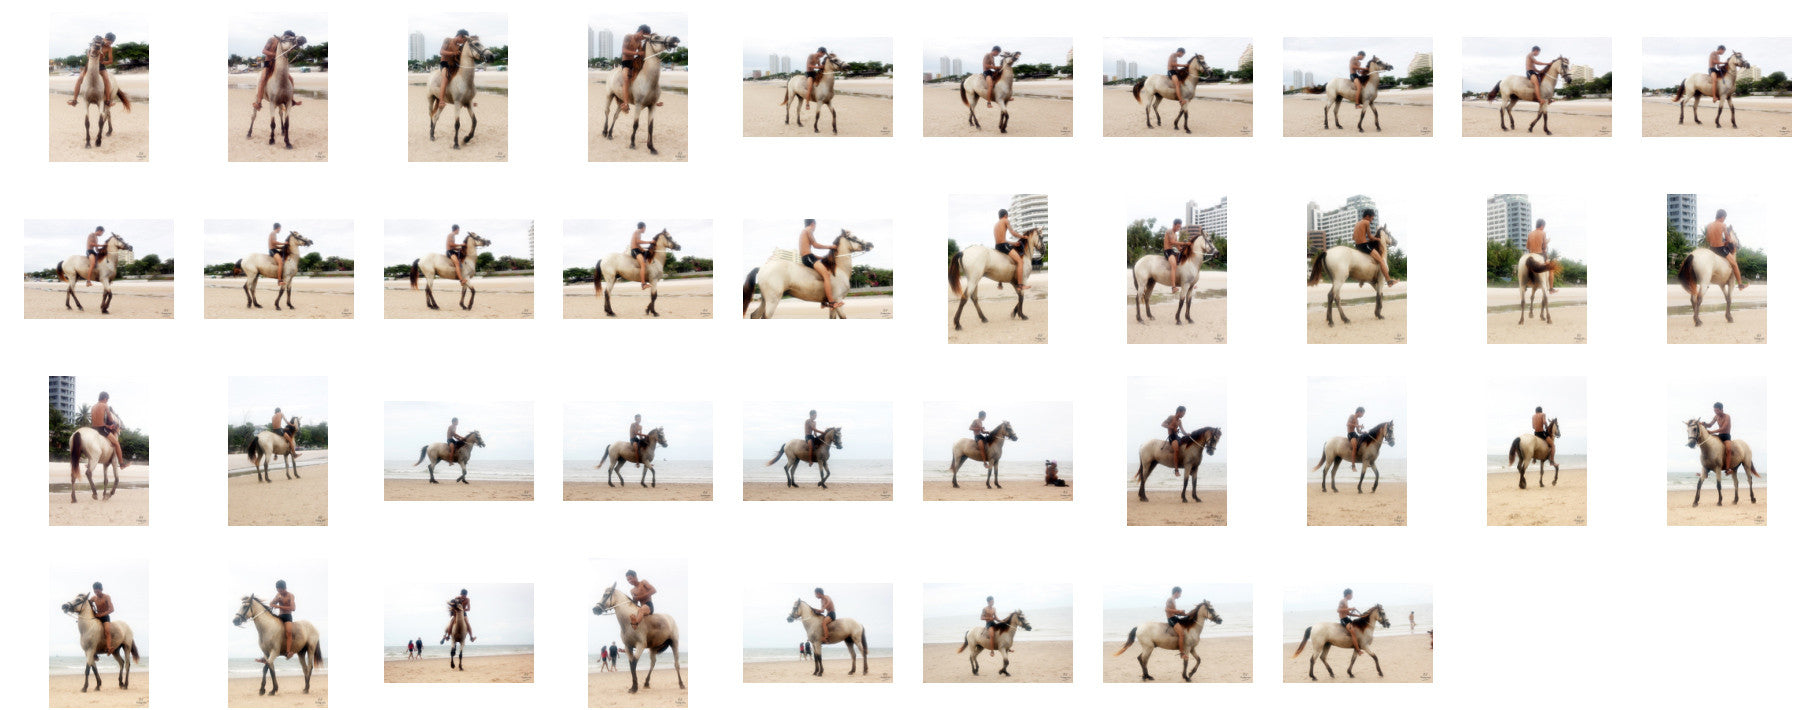 Thaksin in Black Spandex Riding Bareback on Buckskin Horse, Part 5 - Riding.Vision